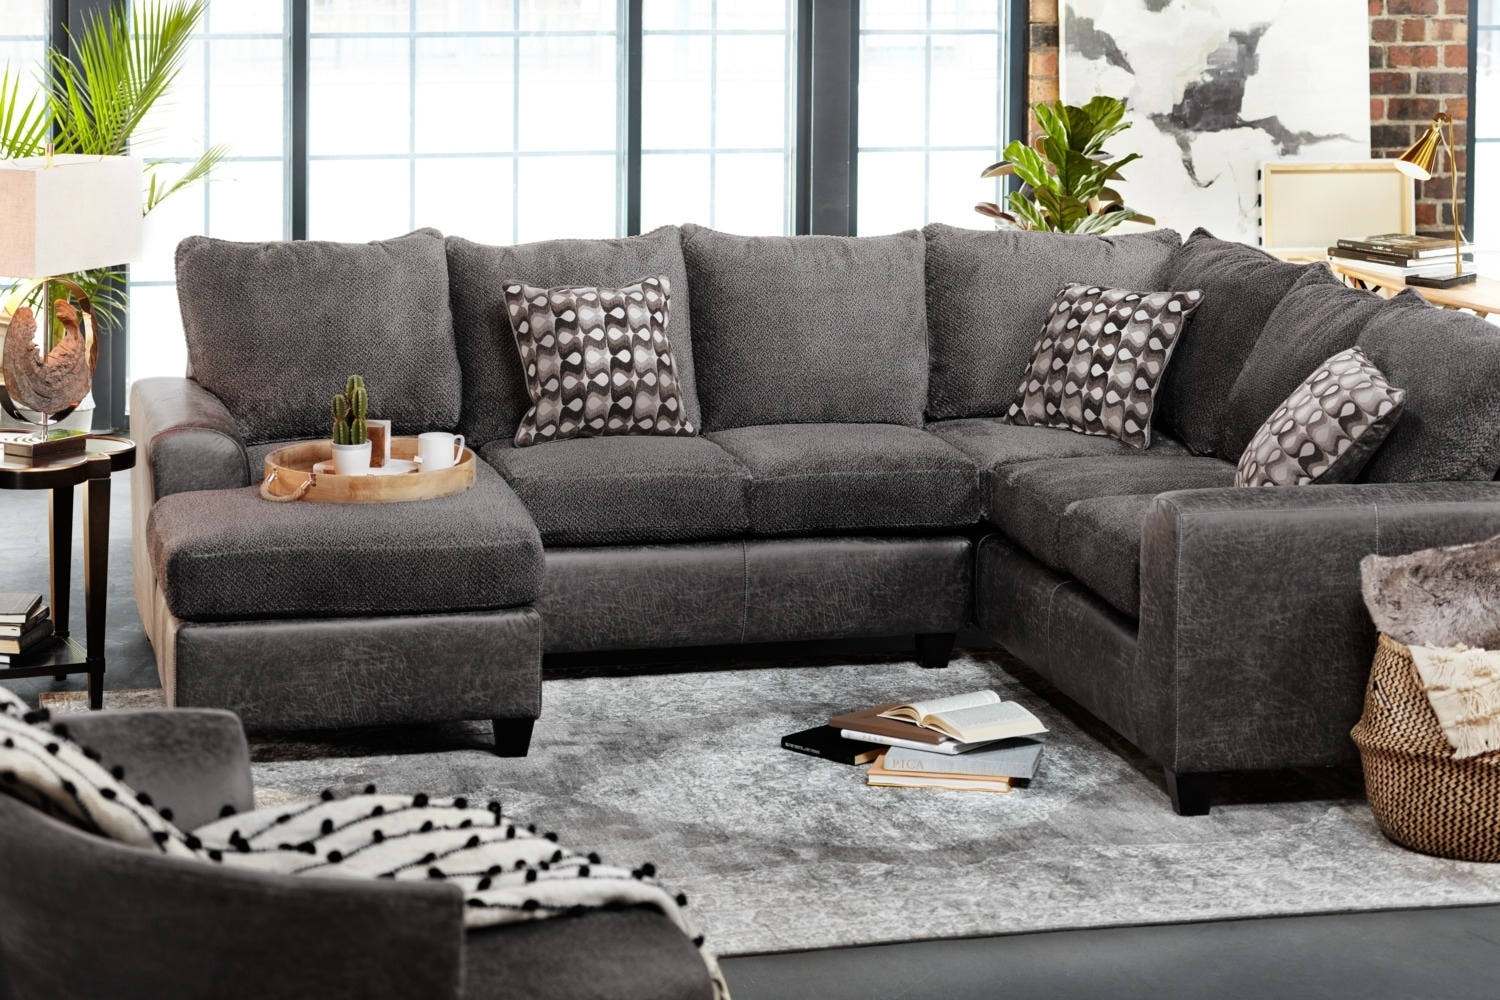 3 Piece Sectional - Locsbyhelenelorasa regarding Harper Foam 3 Piece Sectionals With Raf Chaise